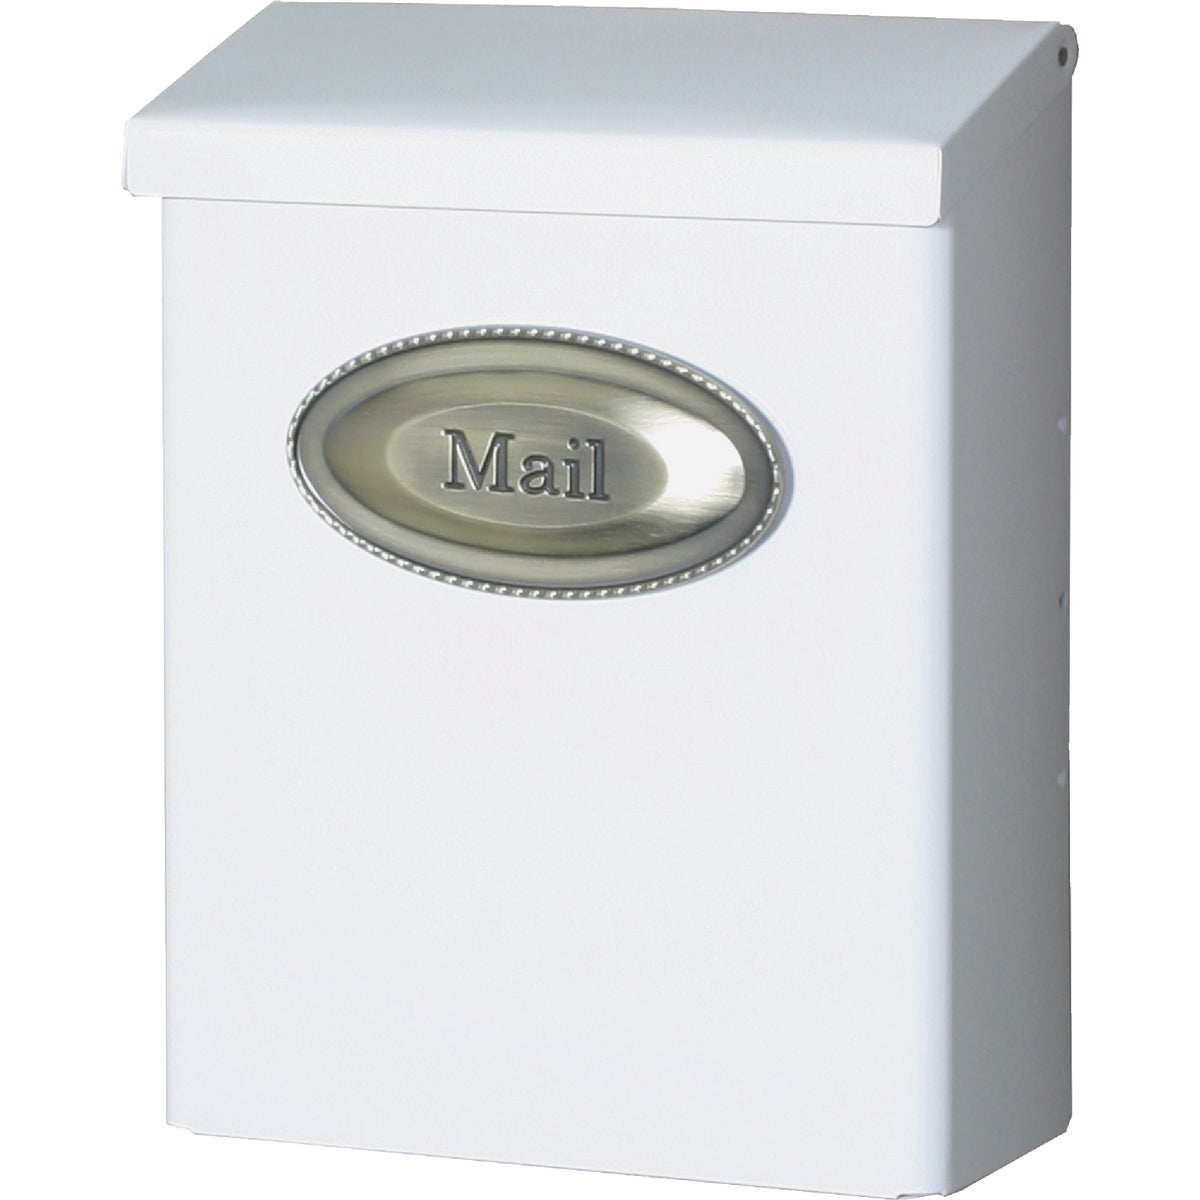 WHT VERT LOCKING MAILBOX - DVKW000 by Solar Group